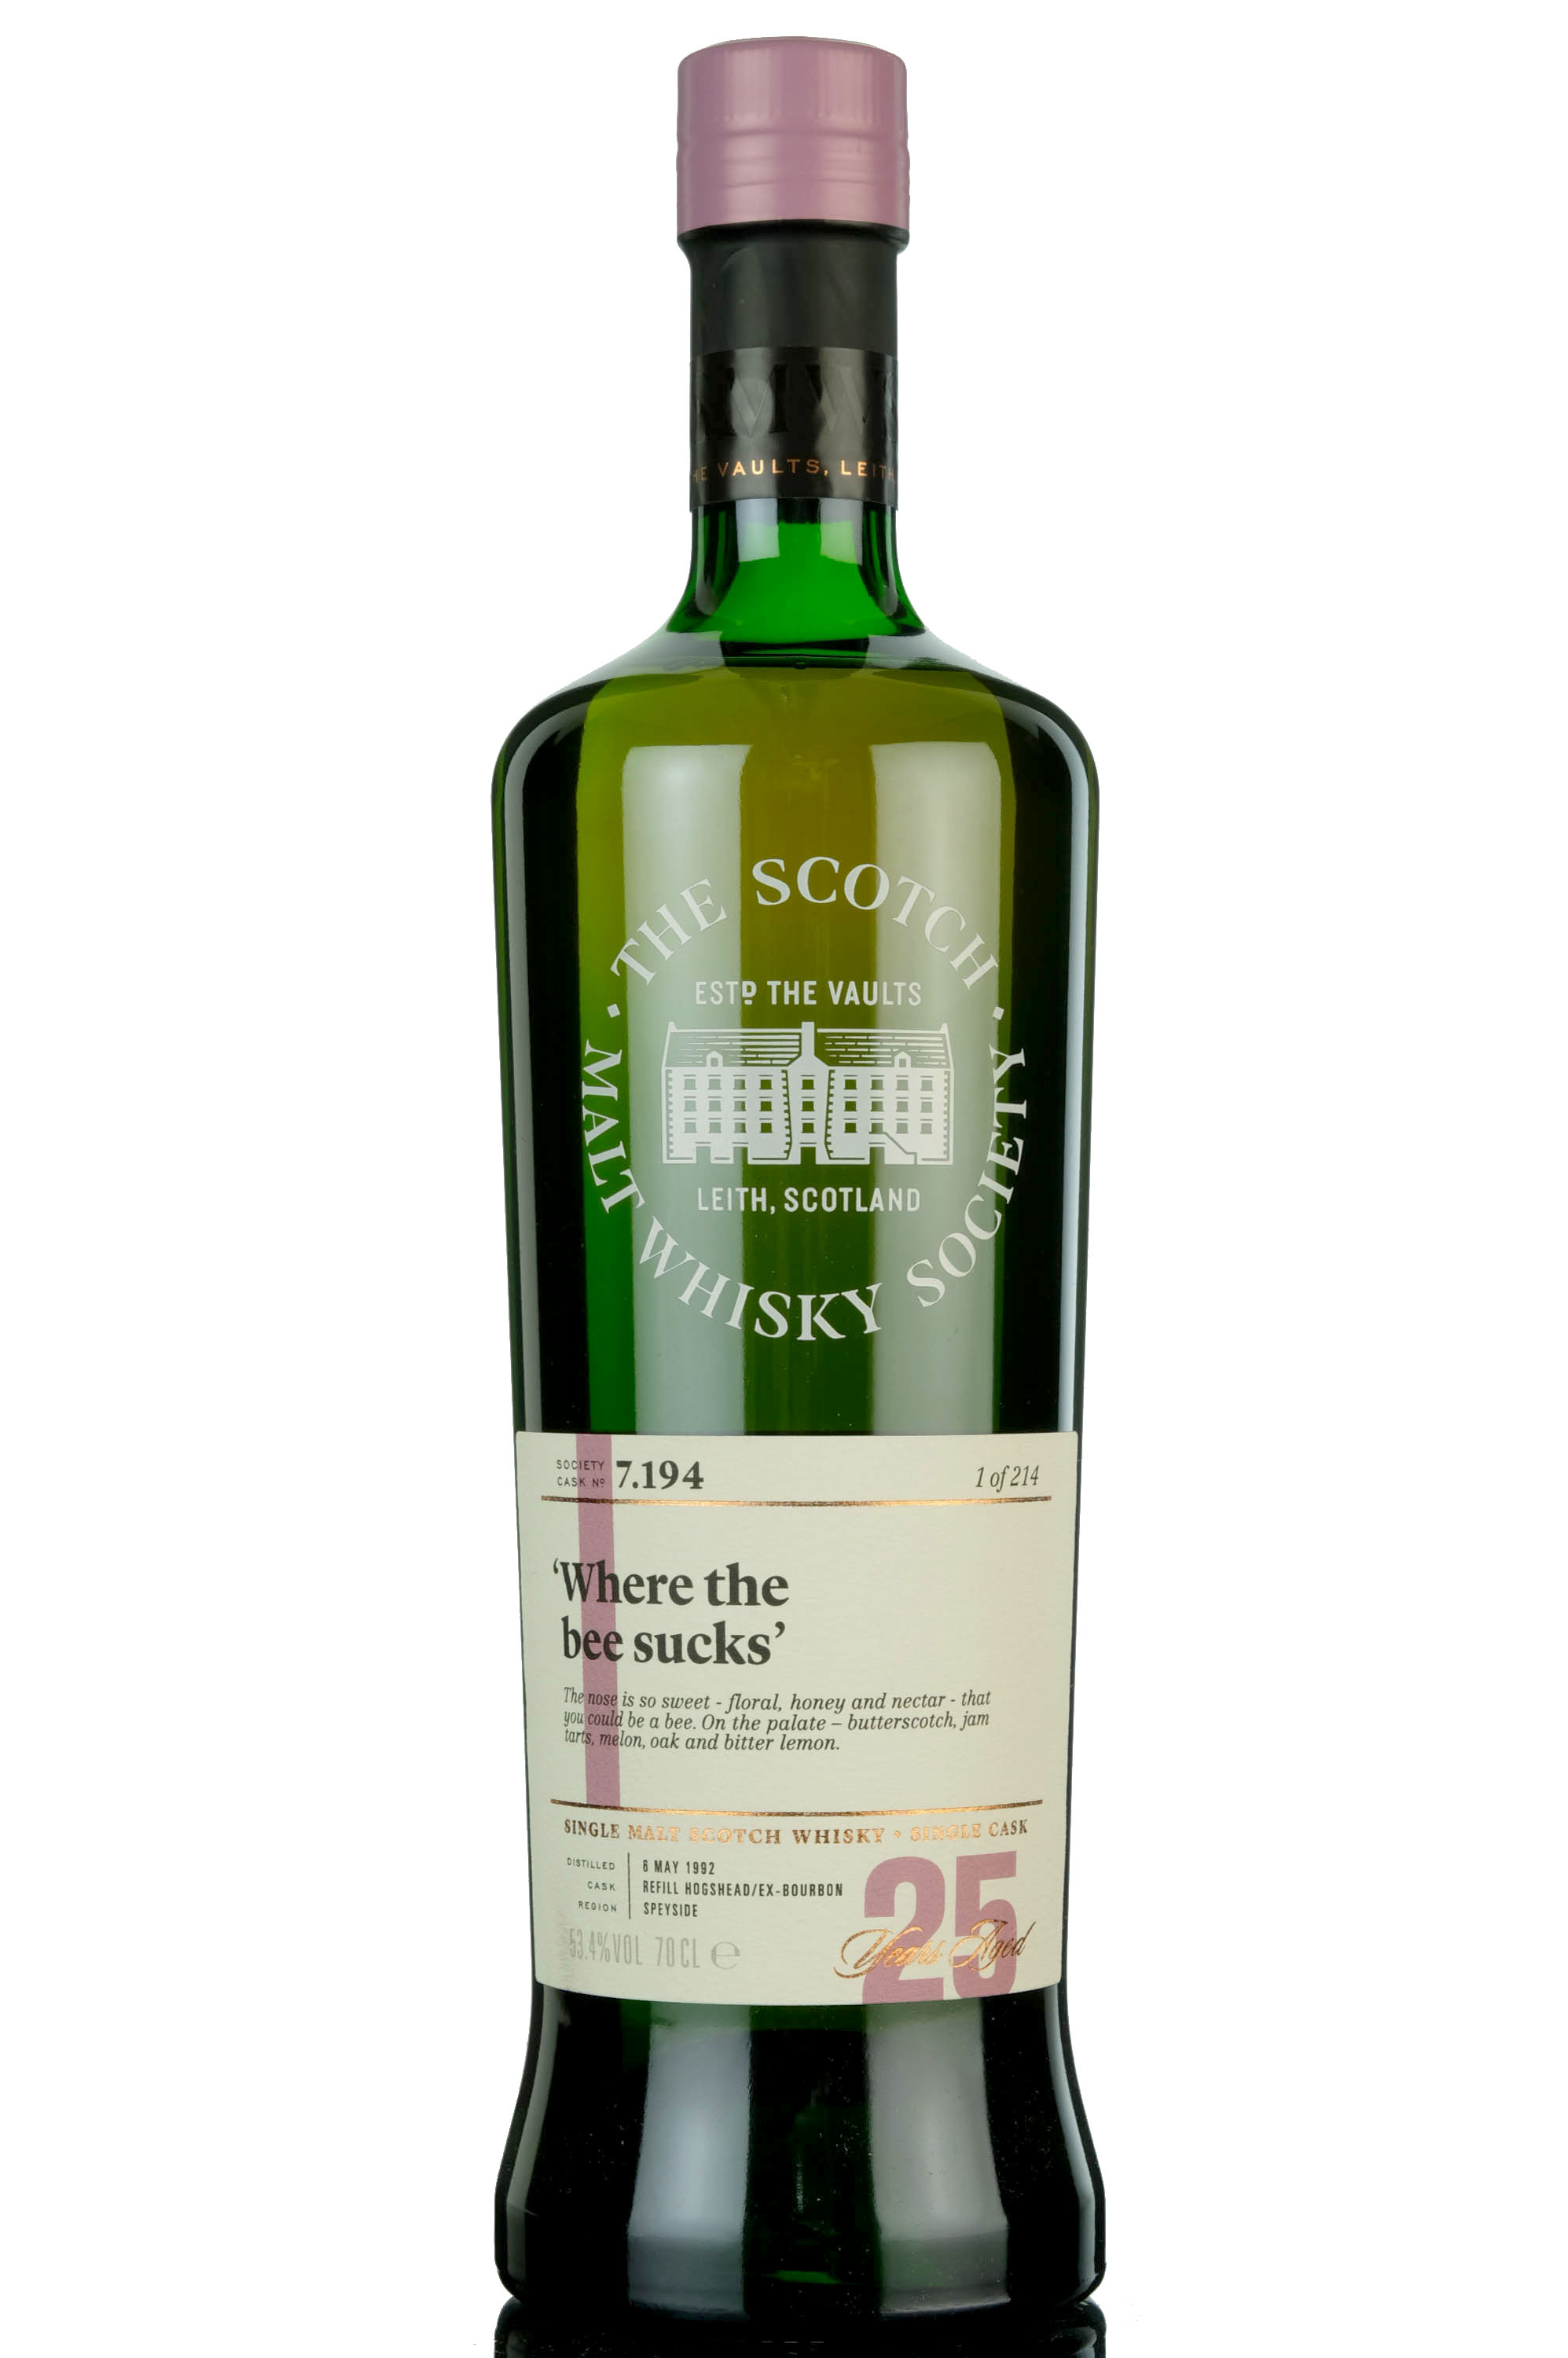 longmorn 1992 - 25 year old - smws 7.194 - where the bee sucks